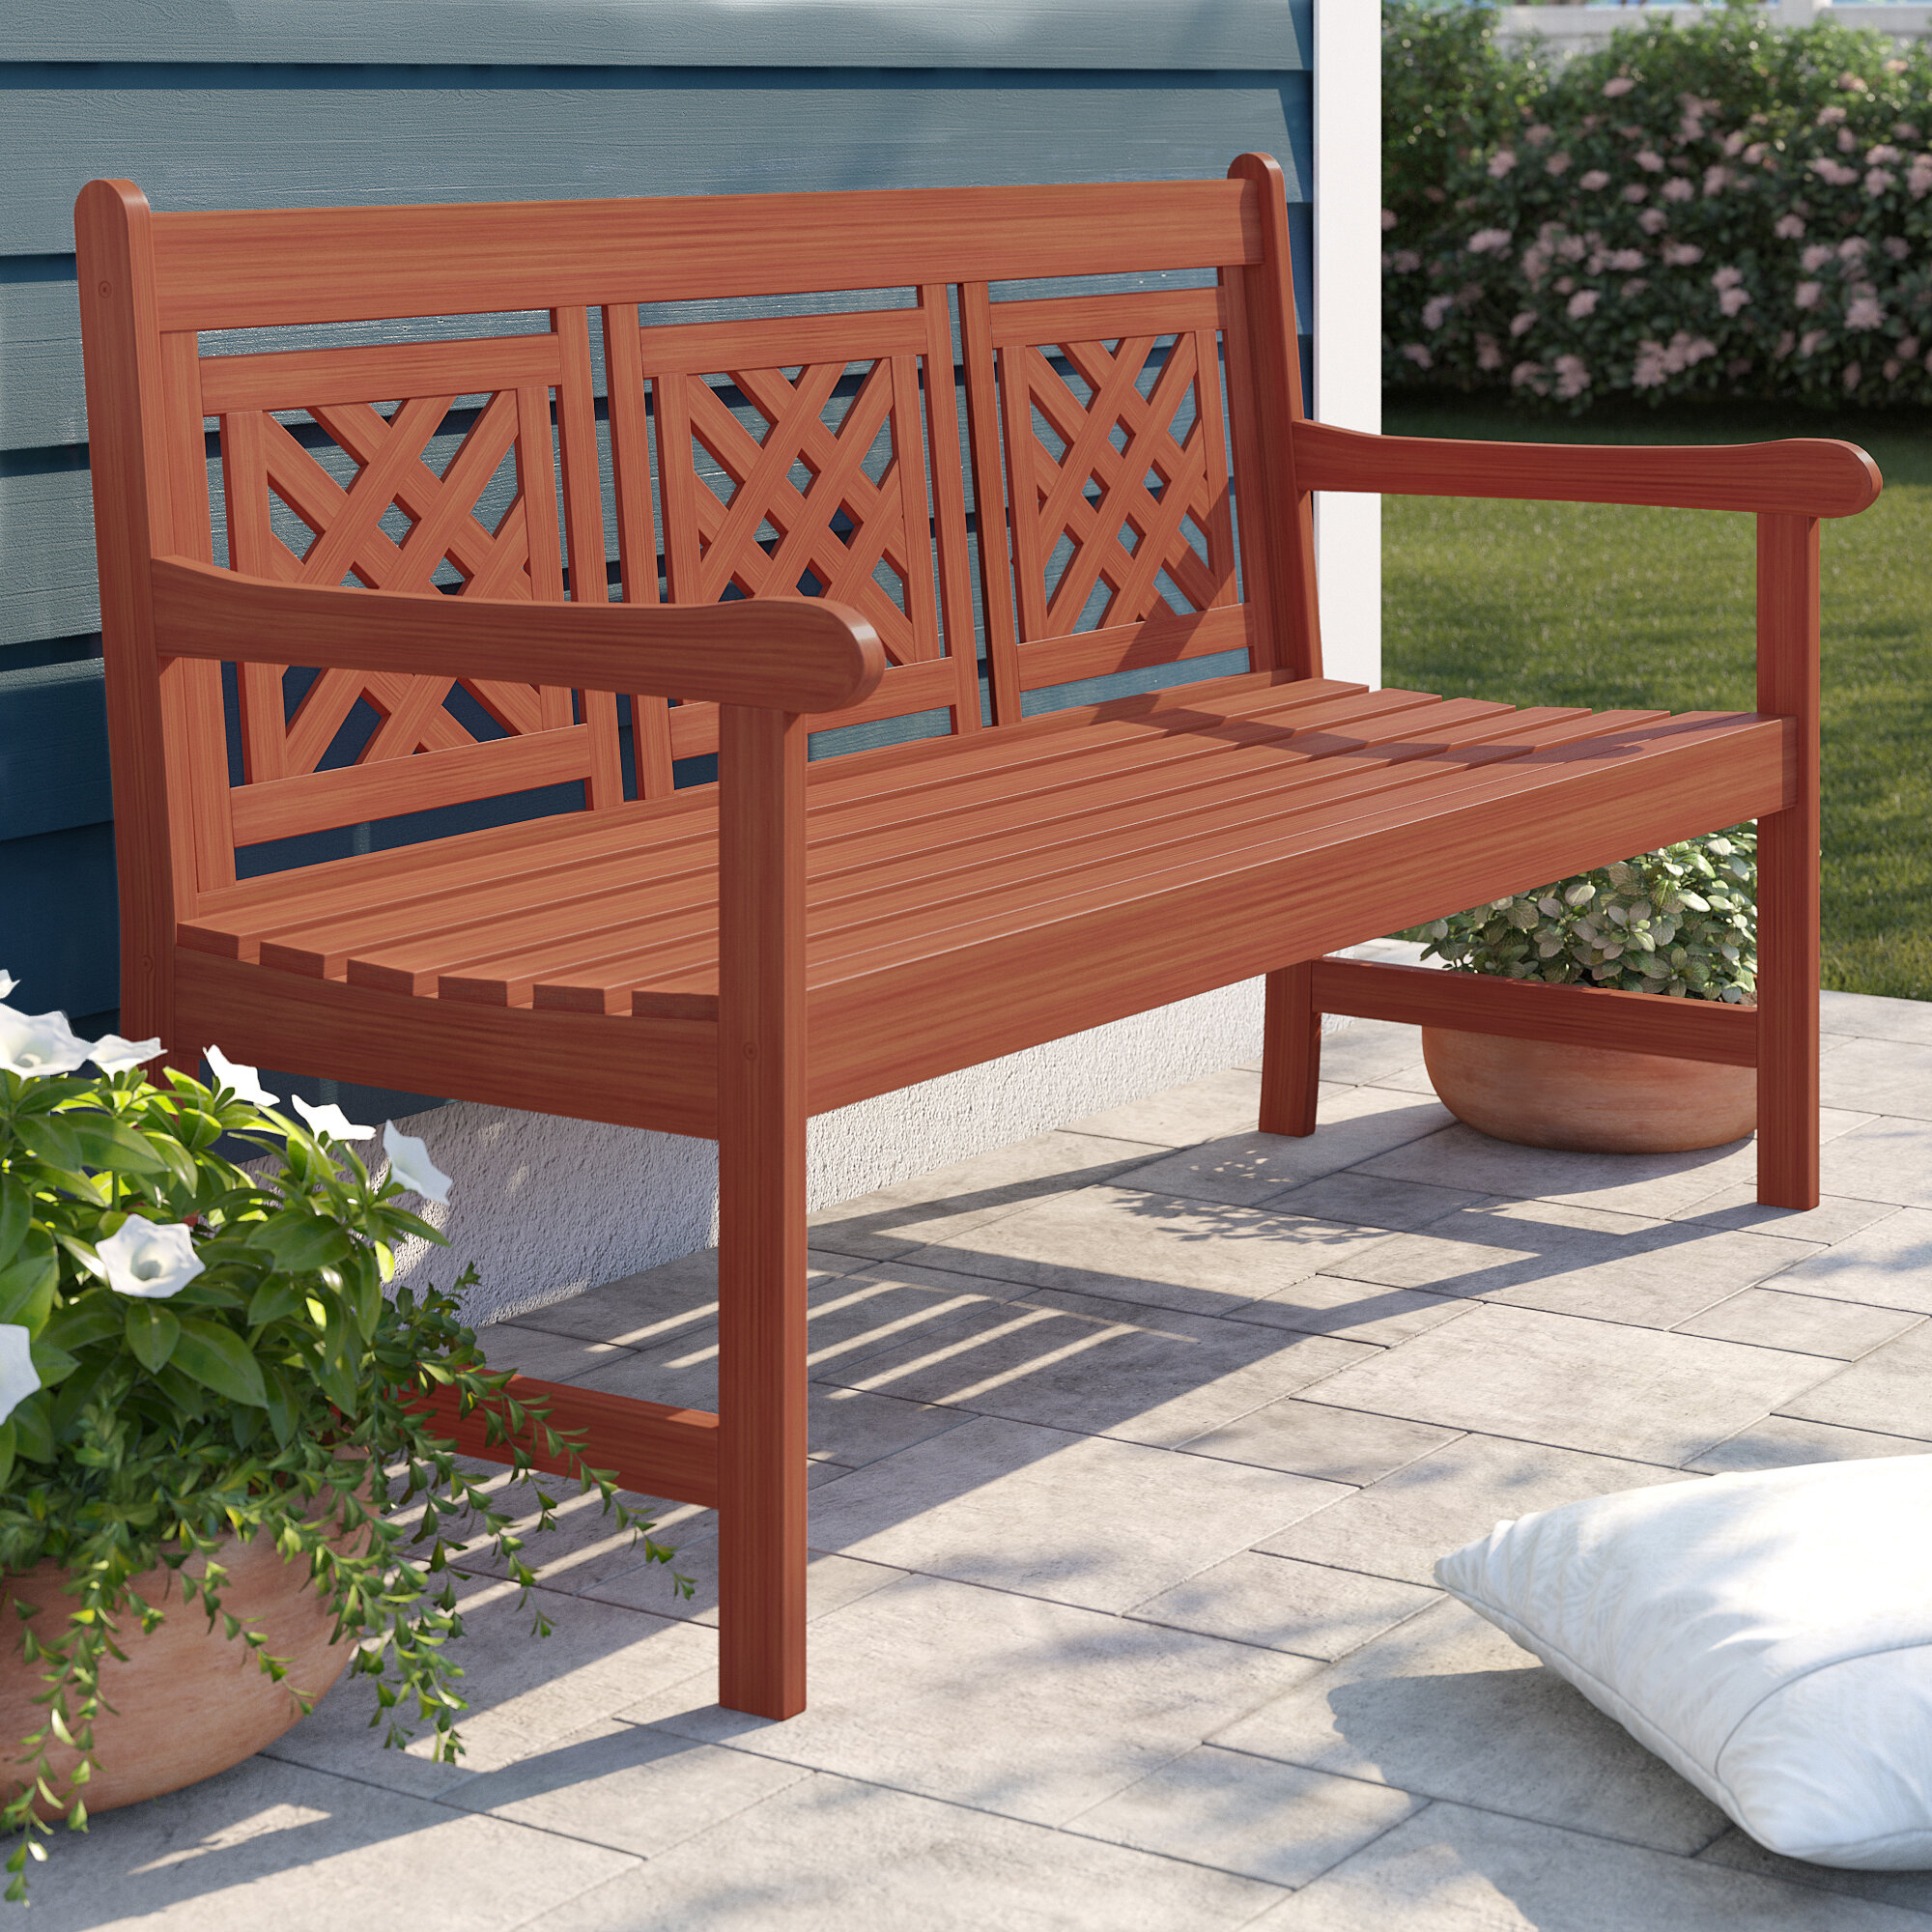 Amabel Patio Plaid Wooden Garden Bench With Regard To Ahana Wooden Garden Benches (View 3 of 25)